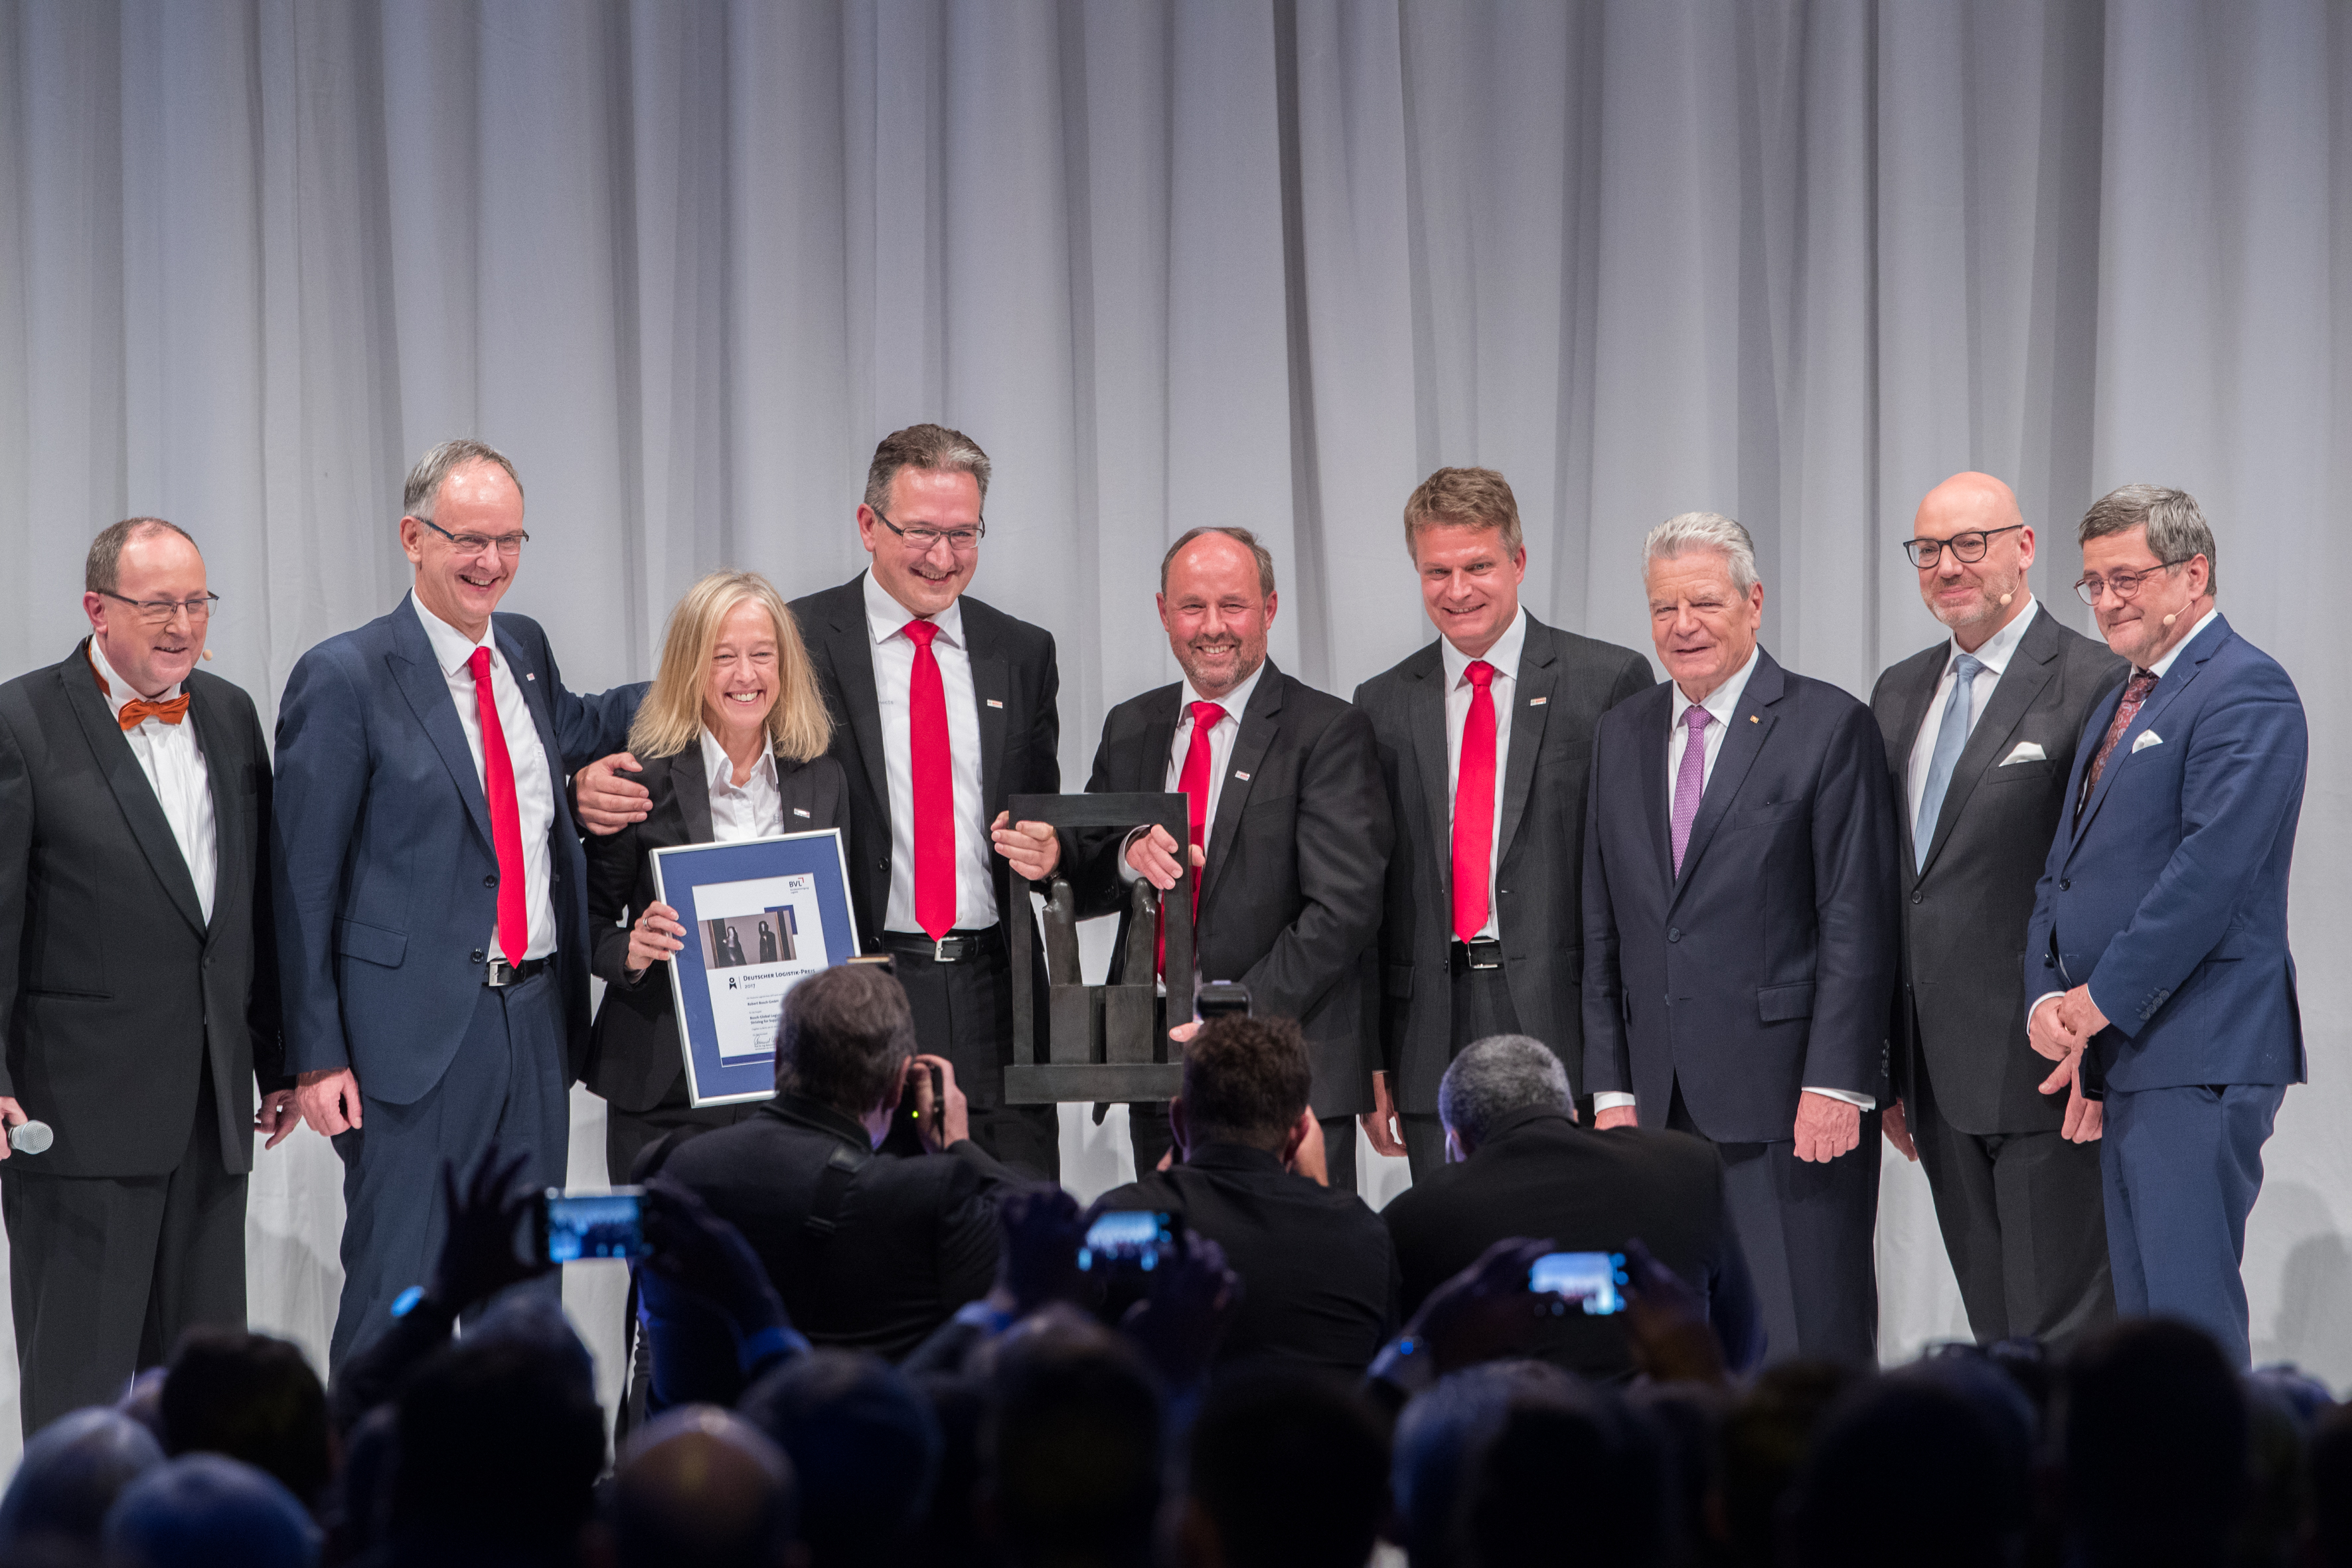 The team from Bosch led by Andreas Reutter, Executive Vice President Global Logistics (3rd from l.) was honoured by Jury Chairman Roland Tichy (extreme right) as well as – to his left – Prof. Raimund Klinkner and former German President Joachim Gauck.